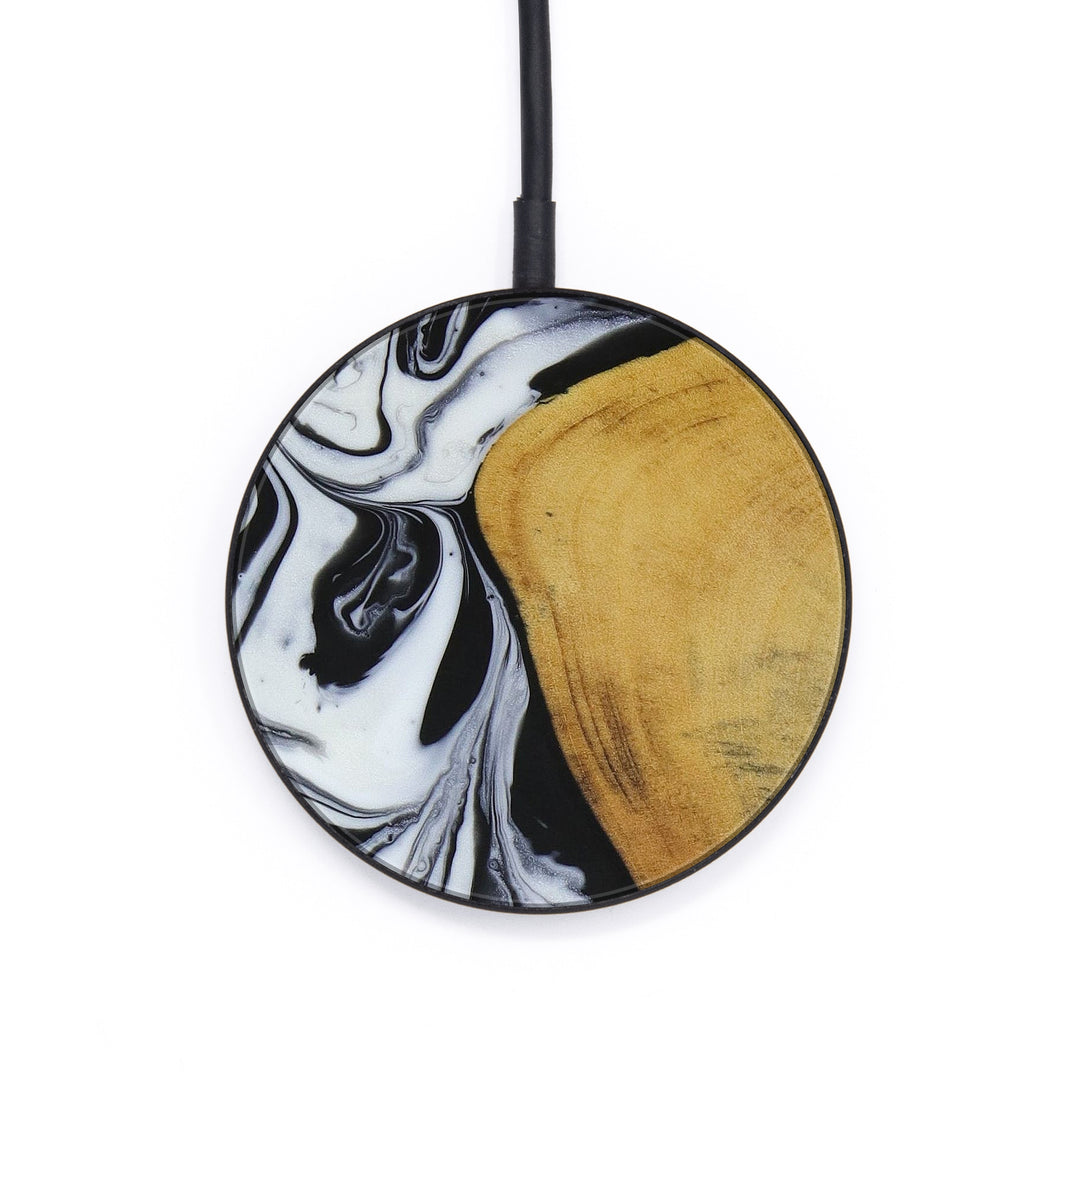 Circle Wood+Resin Wireless Charger - Manda (Black & White, 403904)